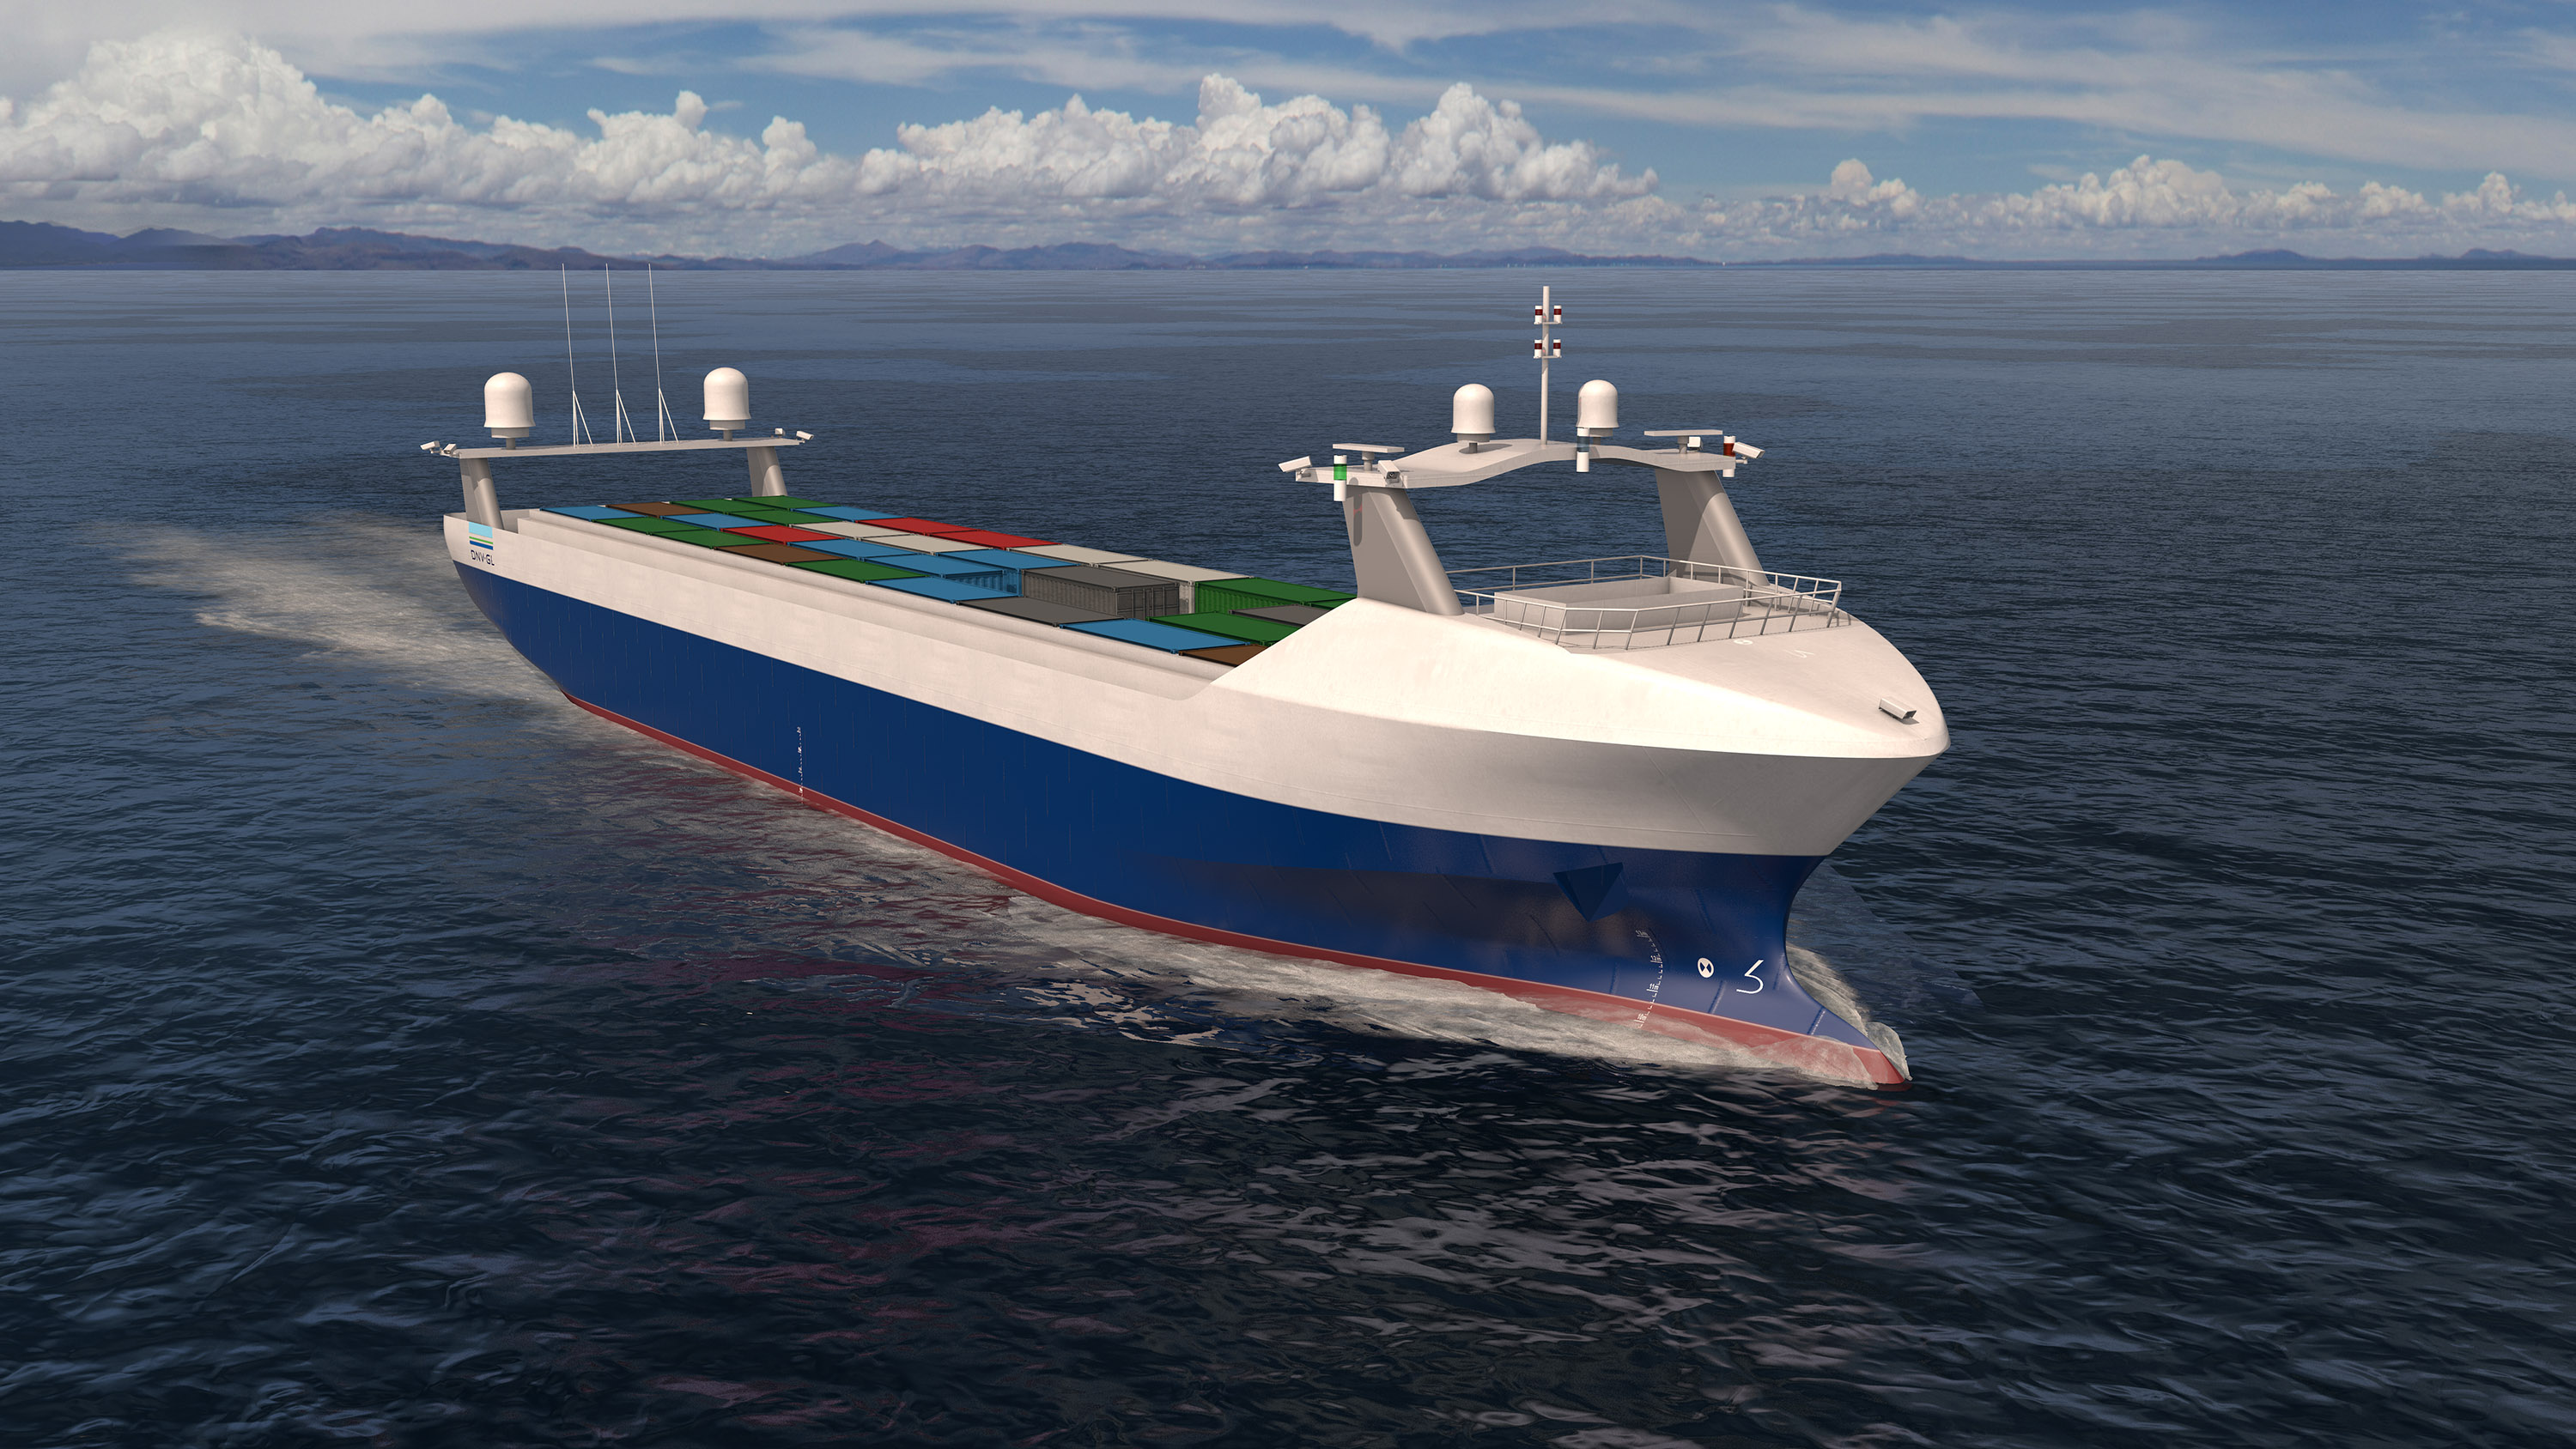 The first commercial autonomous vessels are due to launch in the next several years.